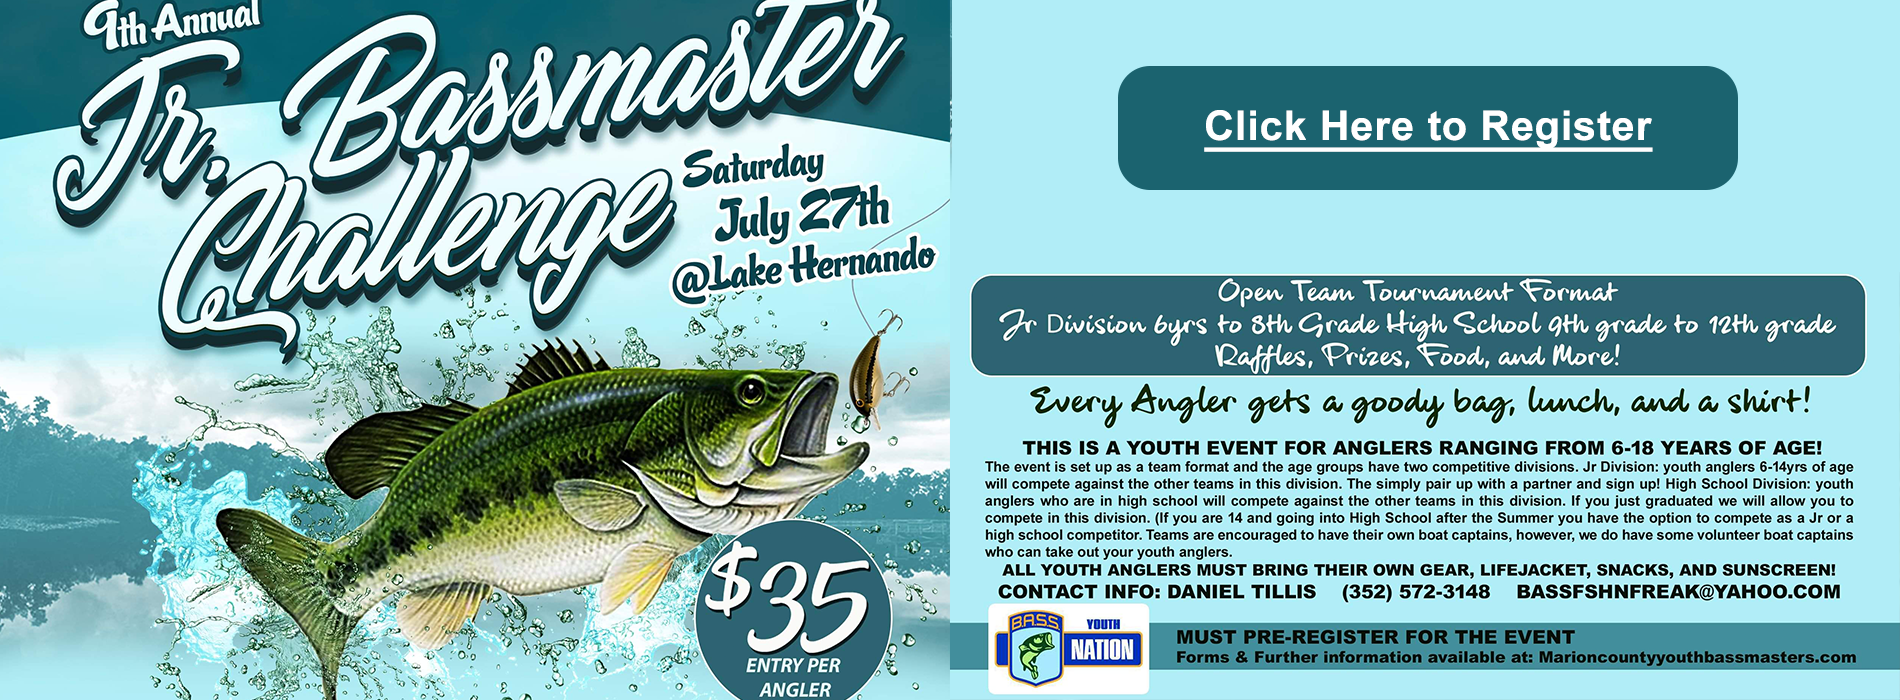 Marion County Youth Bassmaster 2